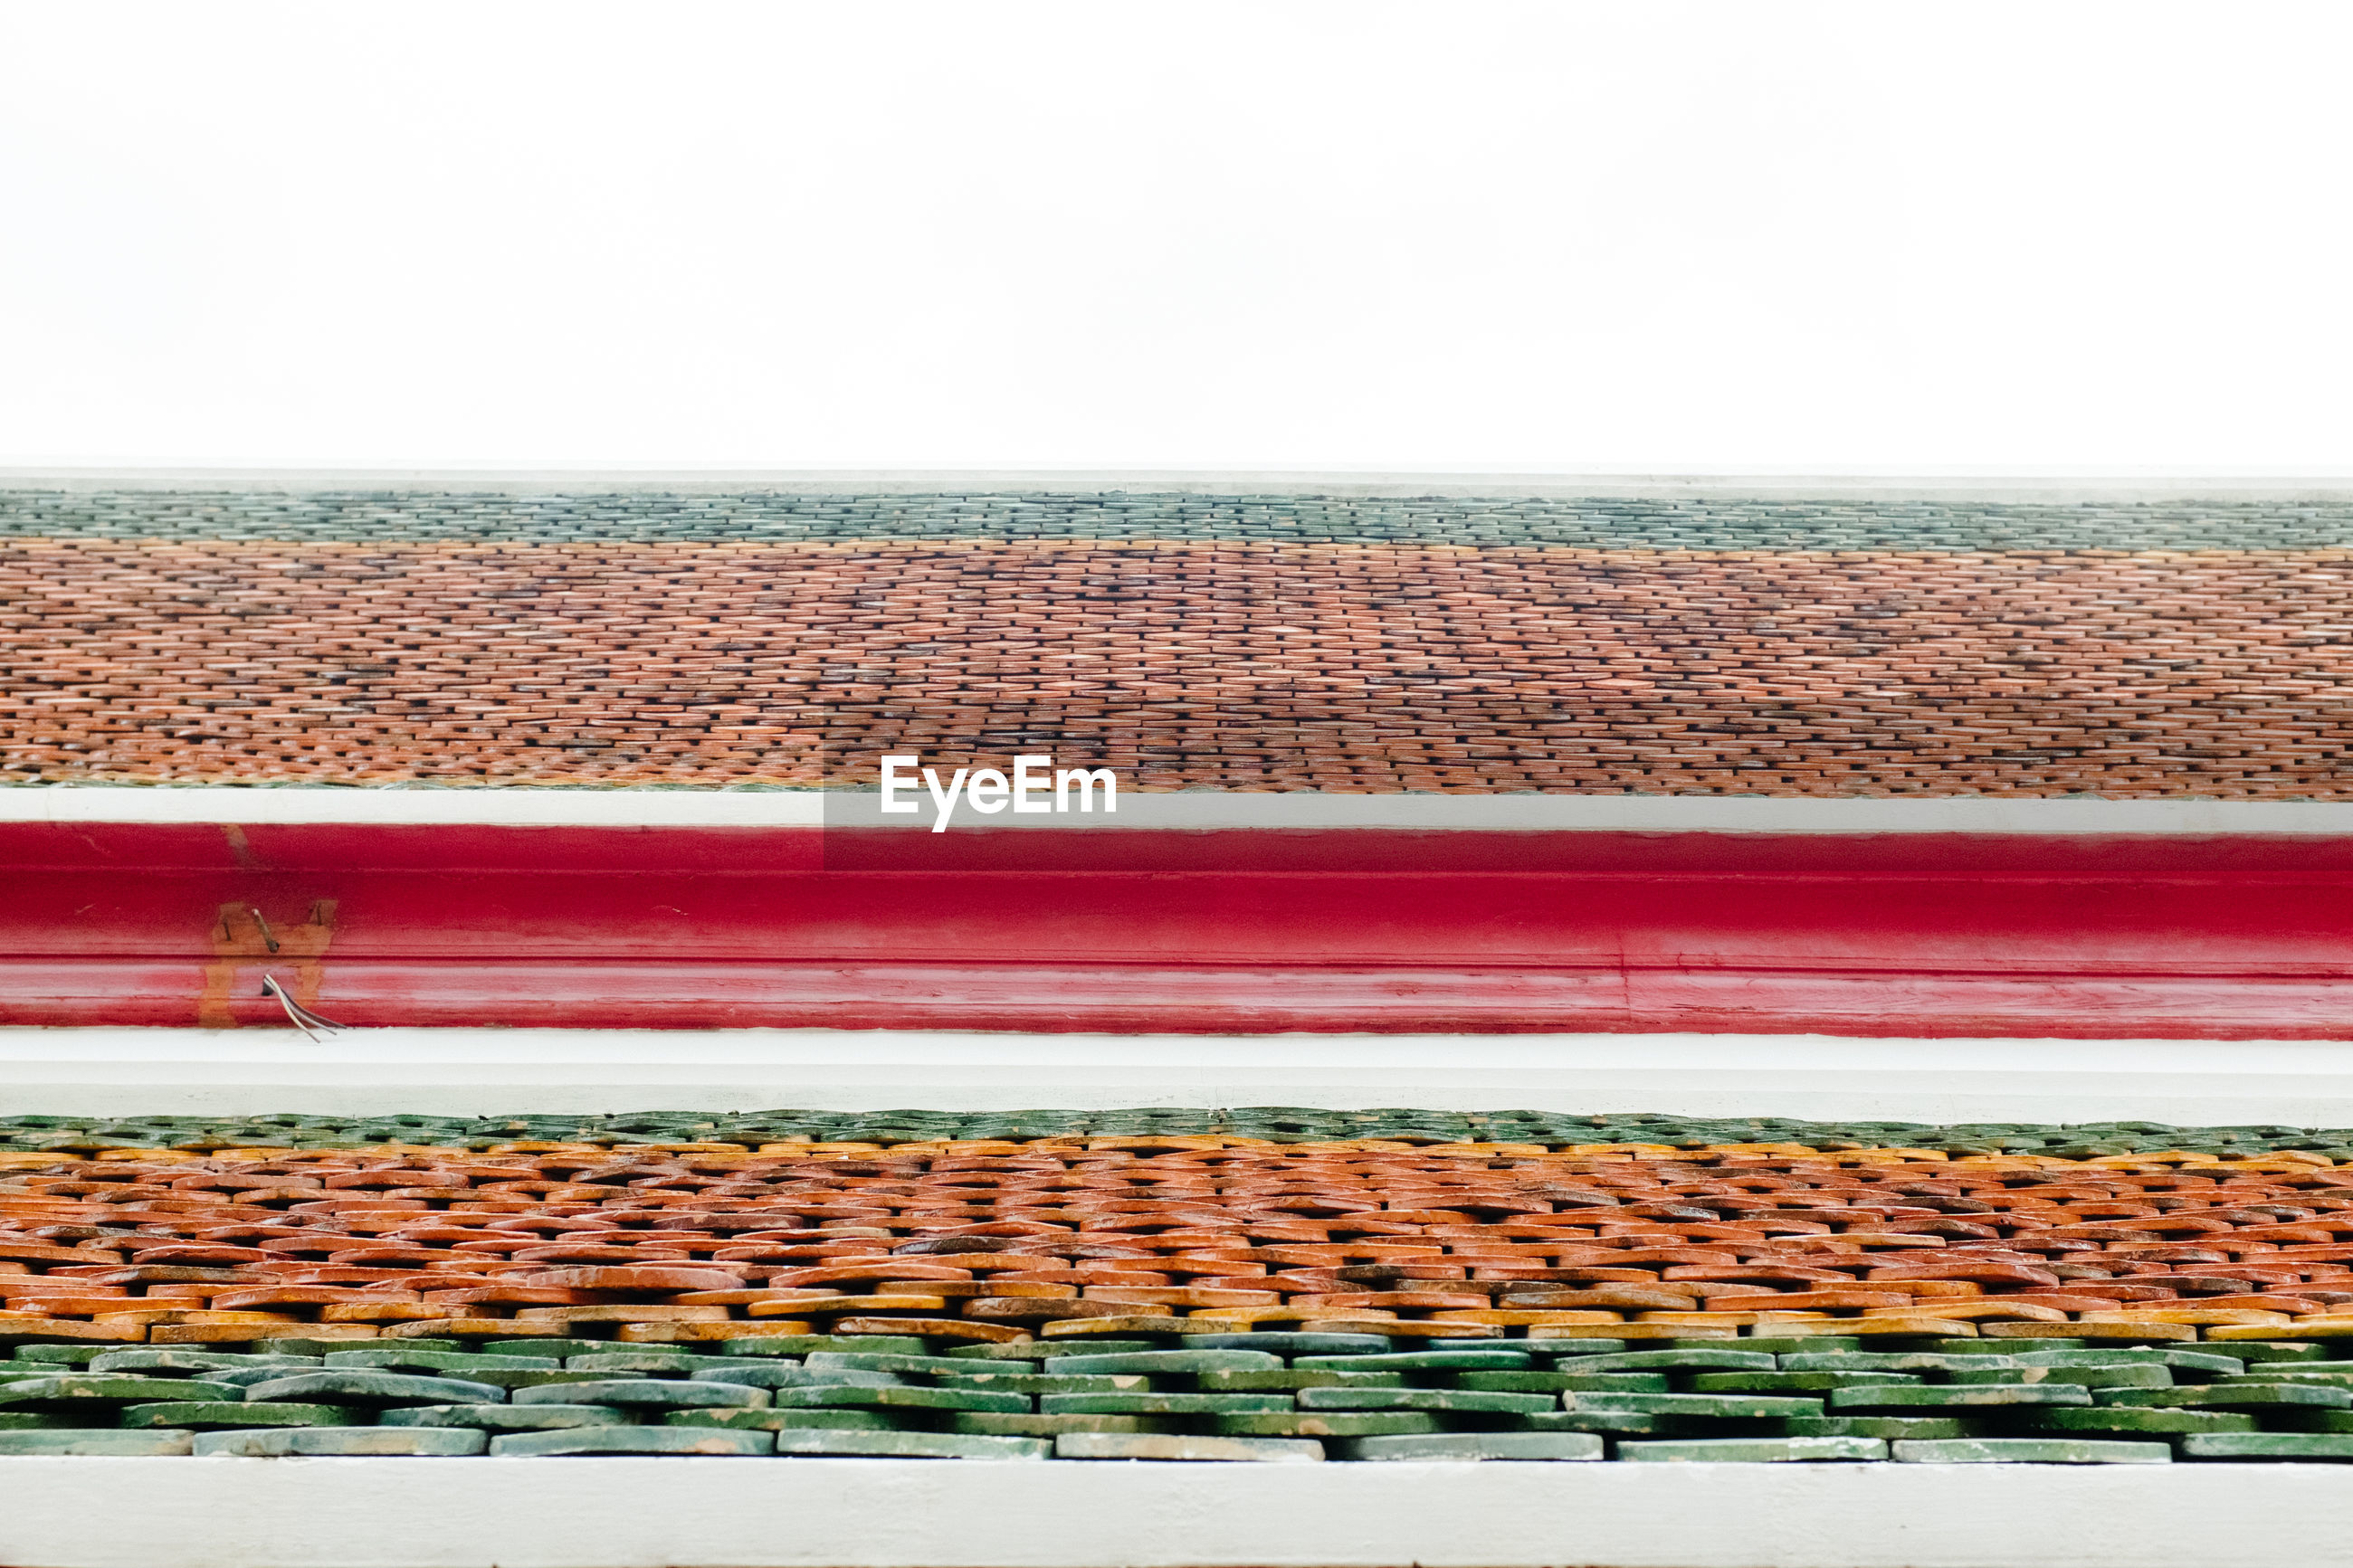 VIEW OF ROOF TILES ON BUILDING TERRACE AGAINST SKY